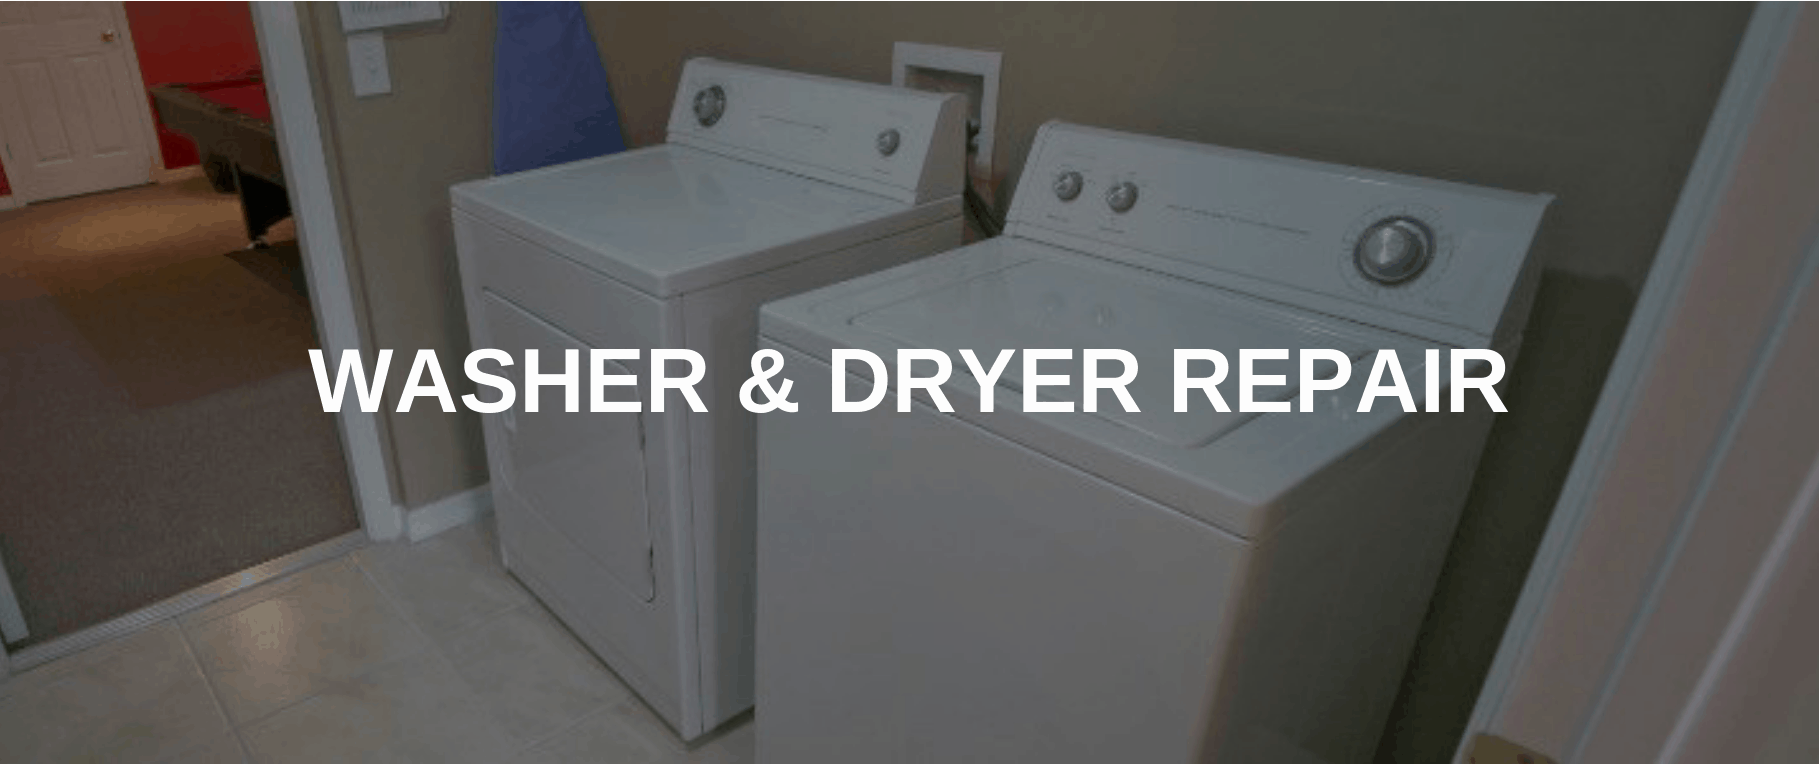 washing machine repair centreville